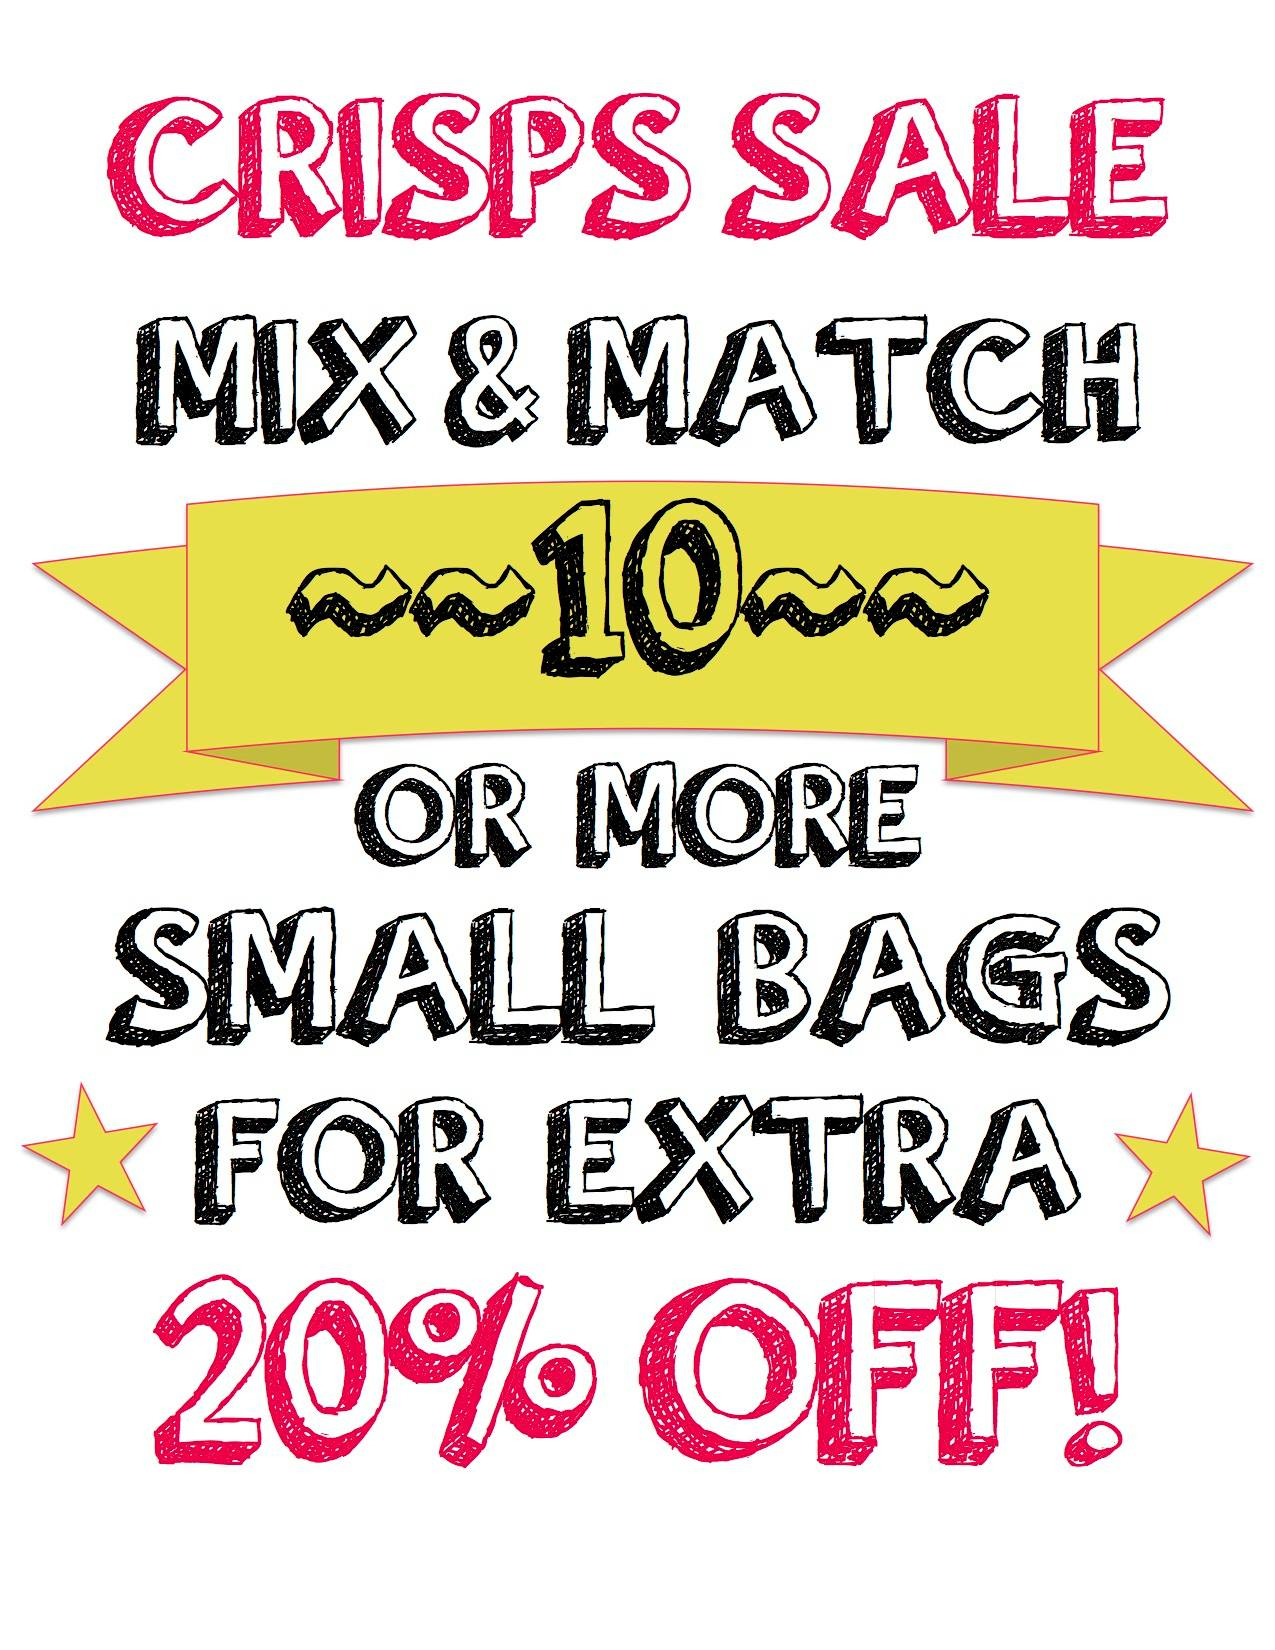 crisps sale buy 10 small bags get 20% off